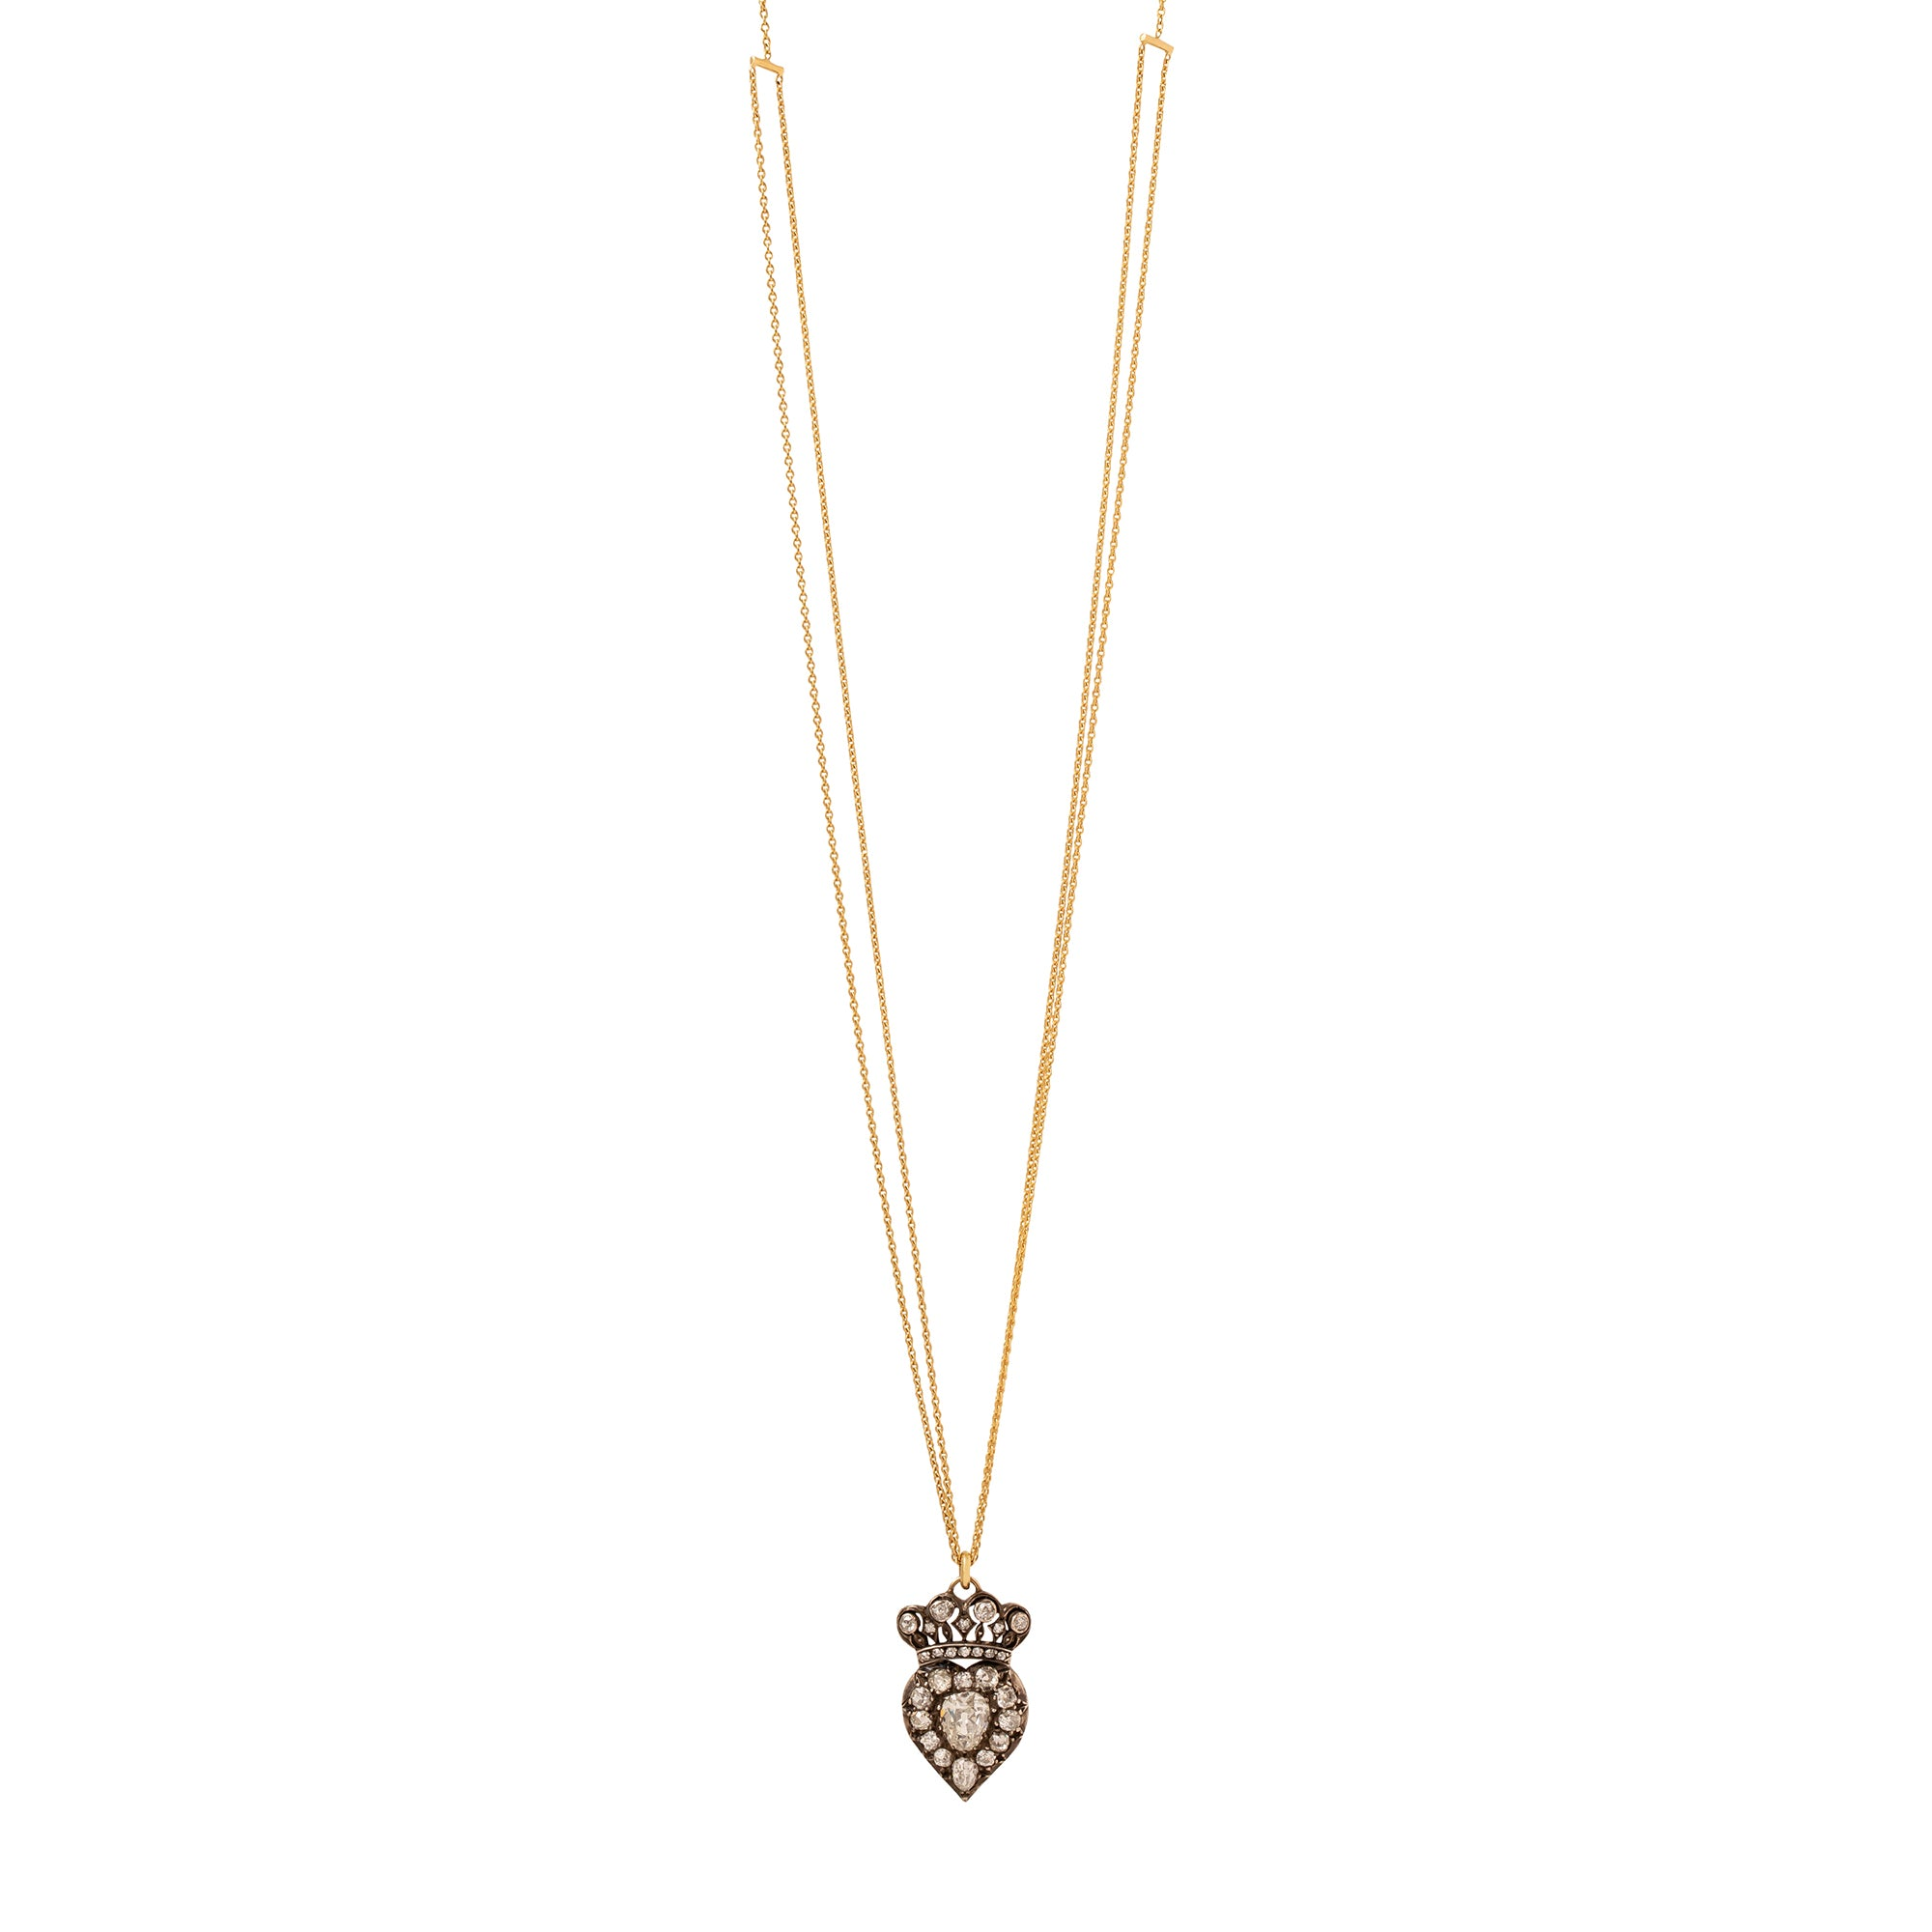 Renee Lewis Antique Diamond Crown Heart Necklace - Necklaces - Broken English Jewelry